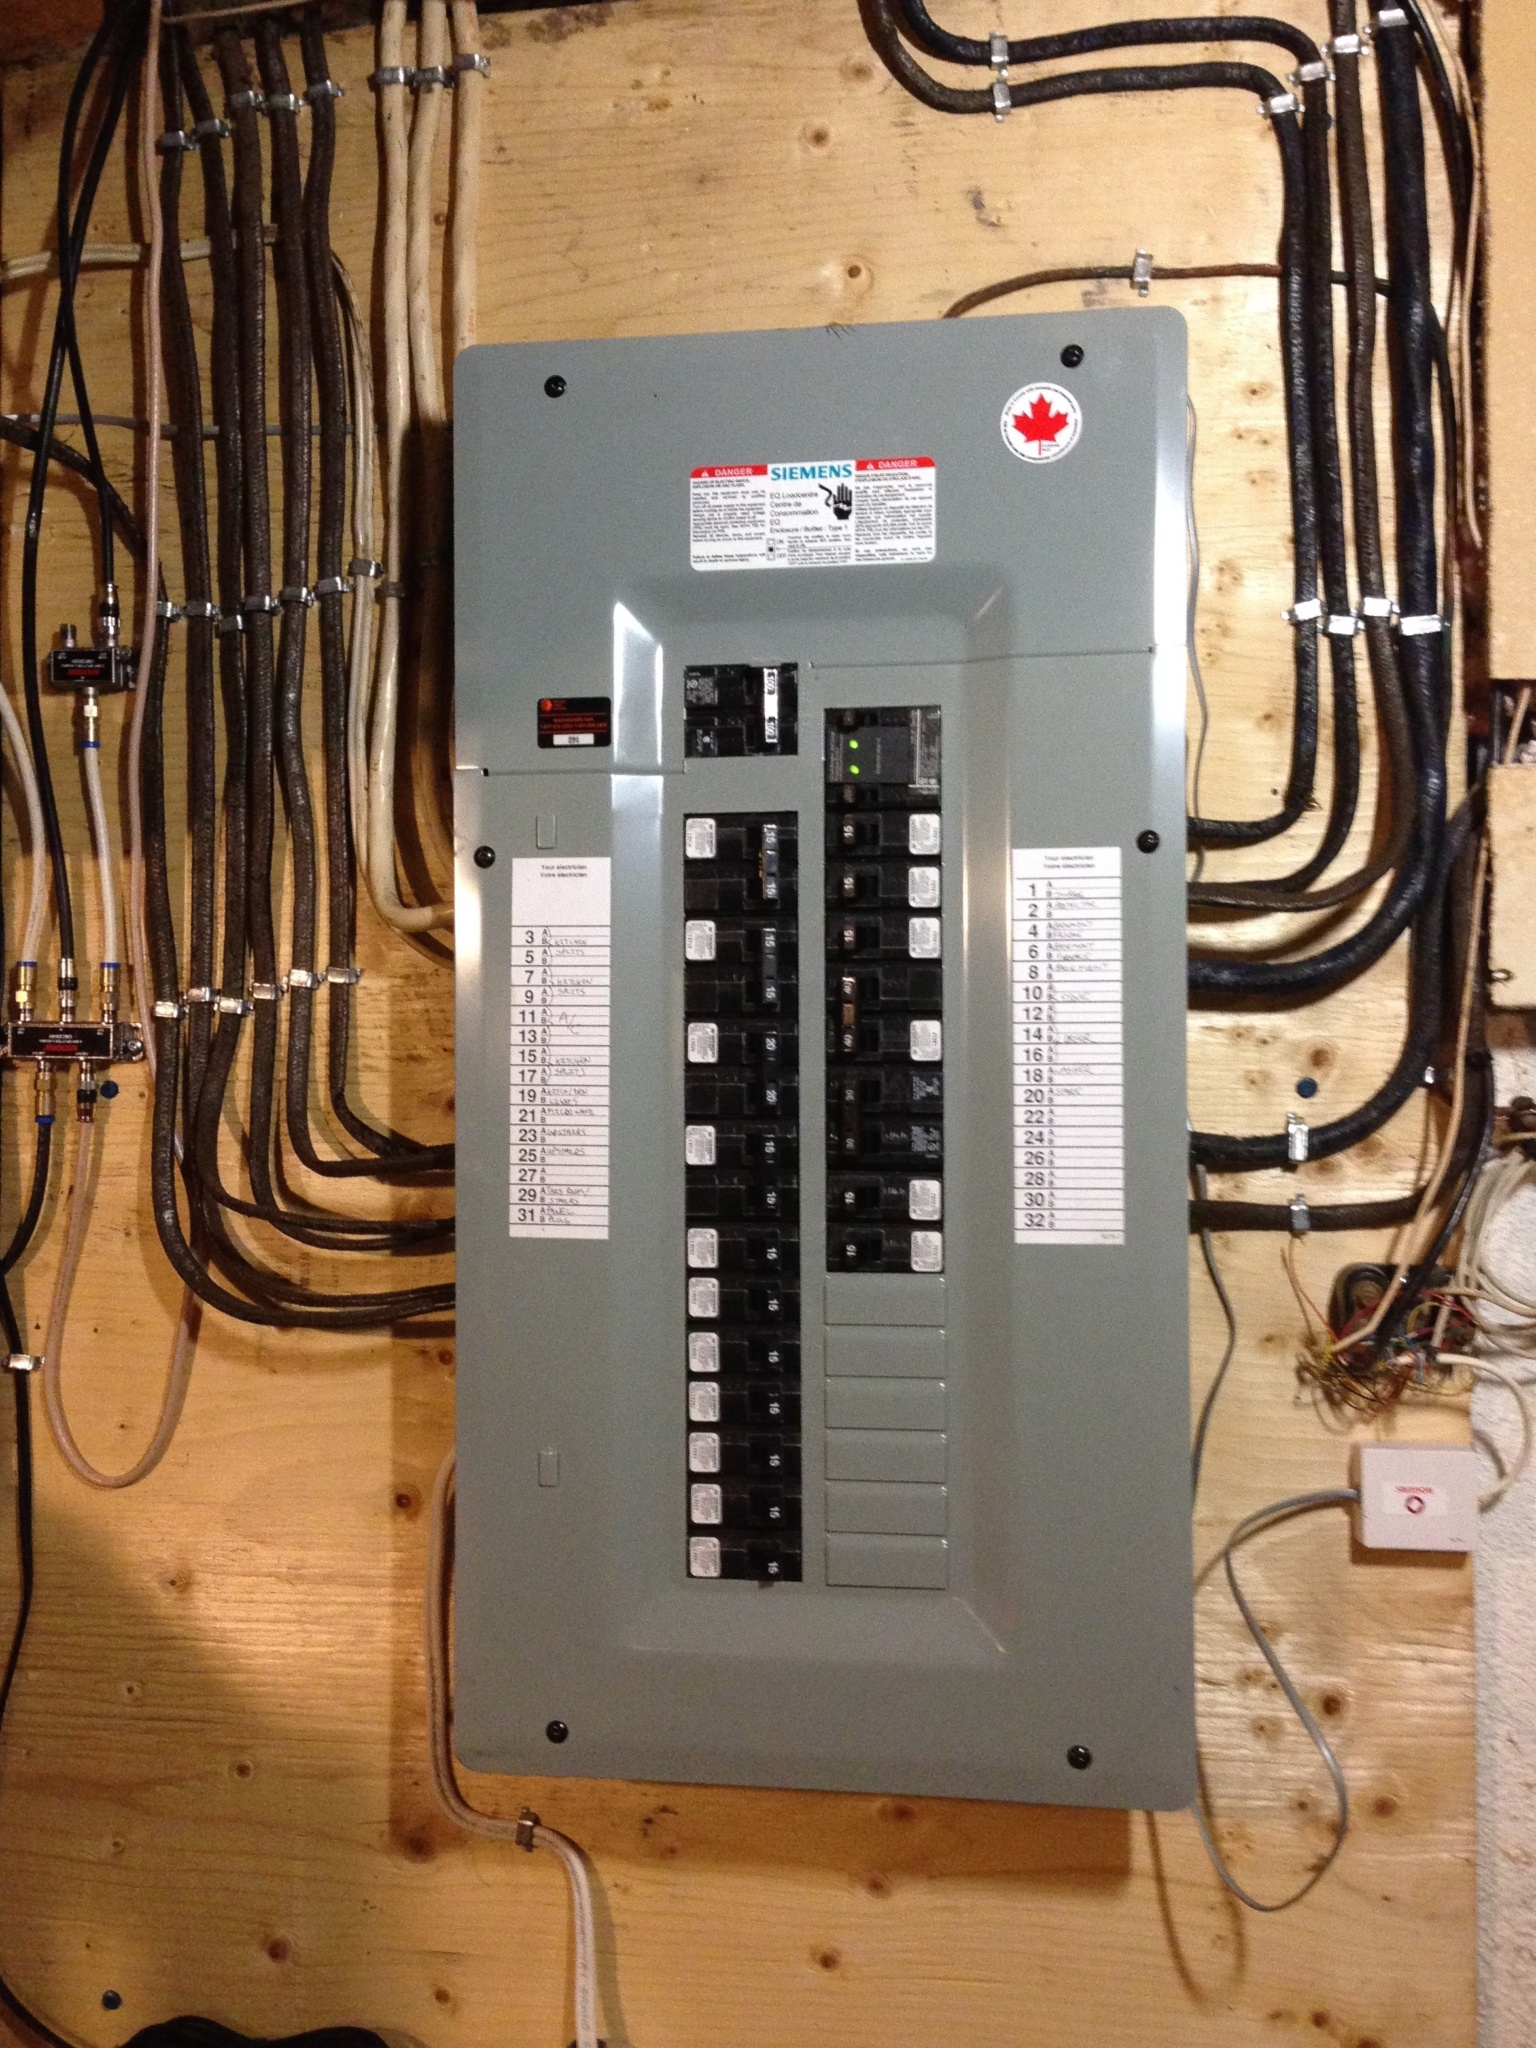 60 Amp Breaker Panel Wiring Electrical Diagrams York Heat Pump Fuse Box Wadsworth Old Trusted Diagram Square D Generator